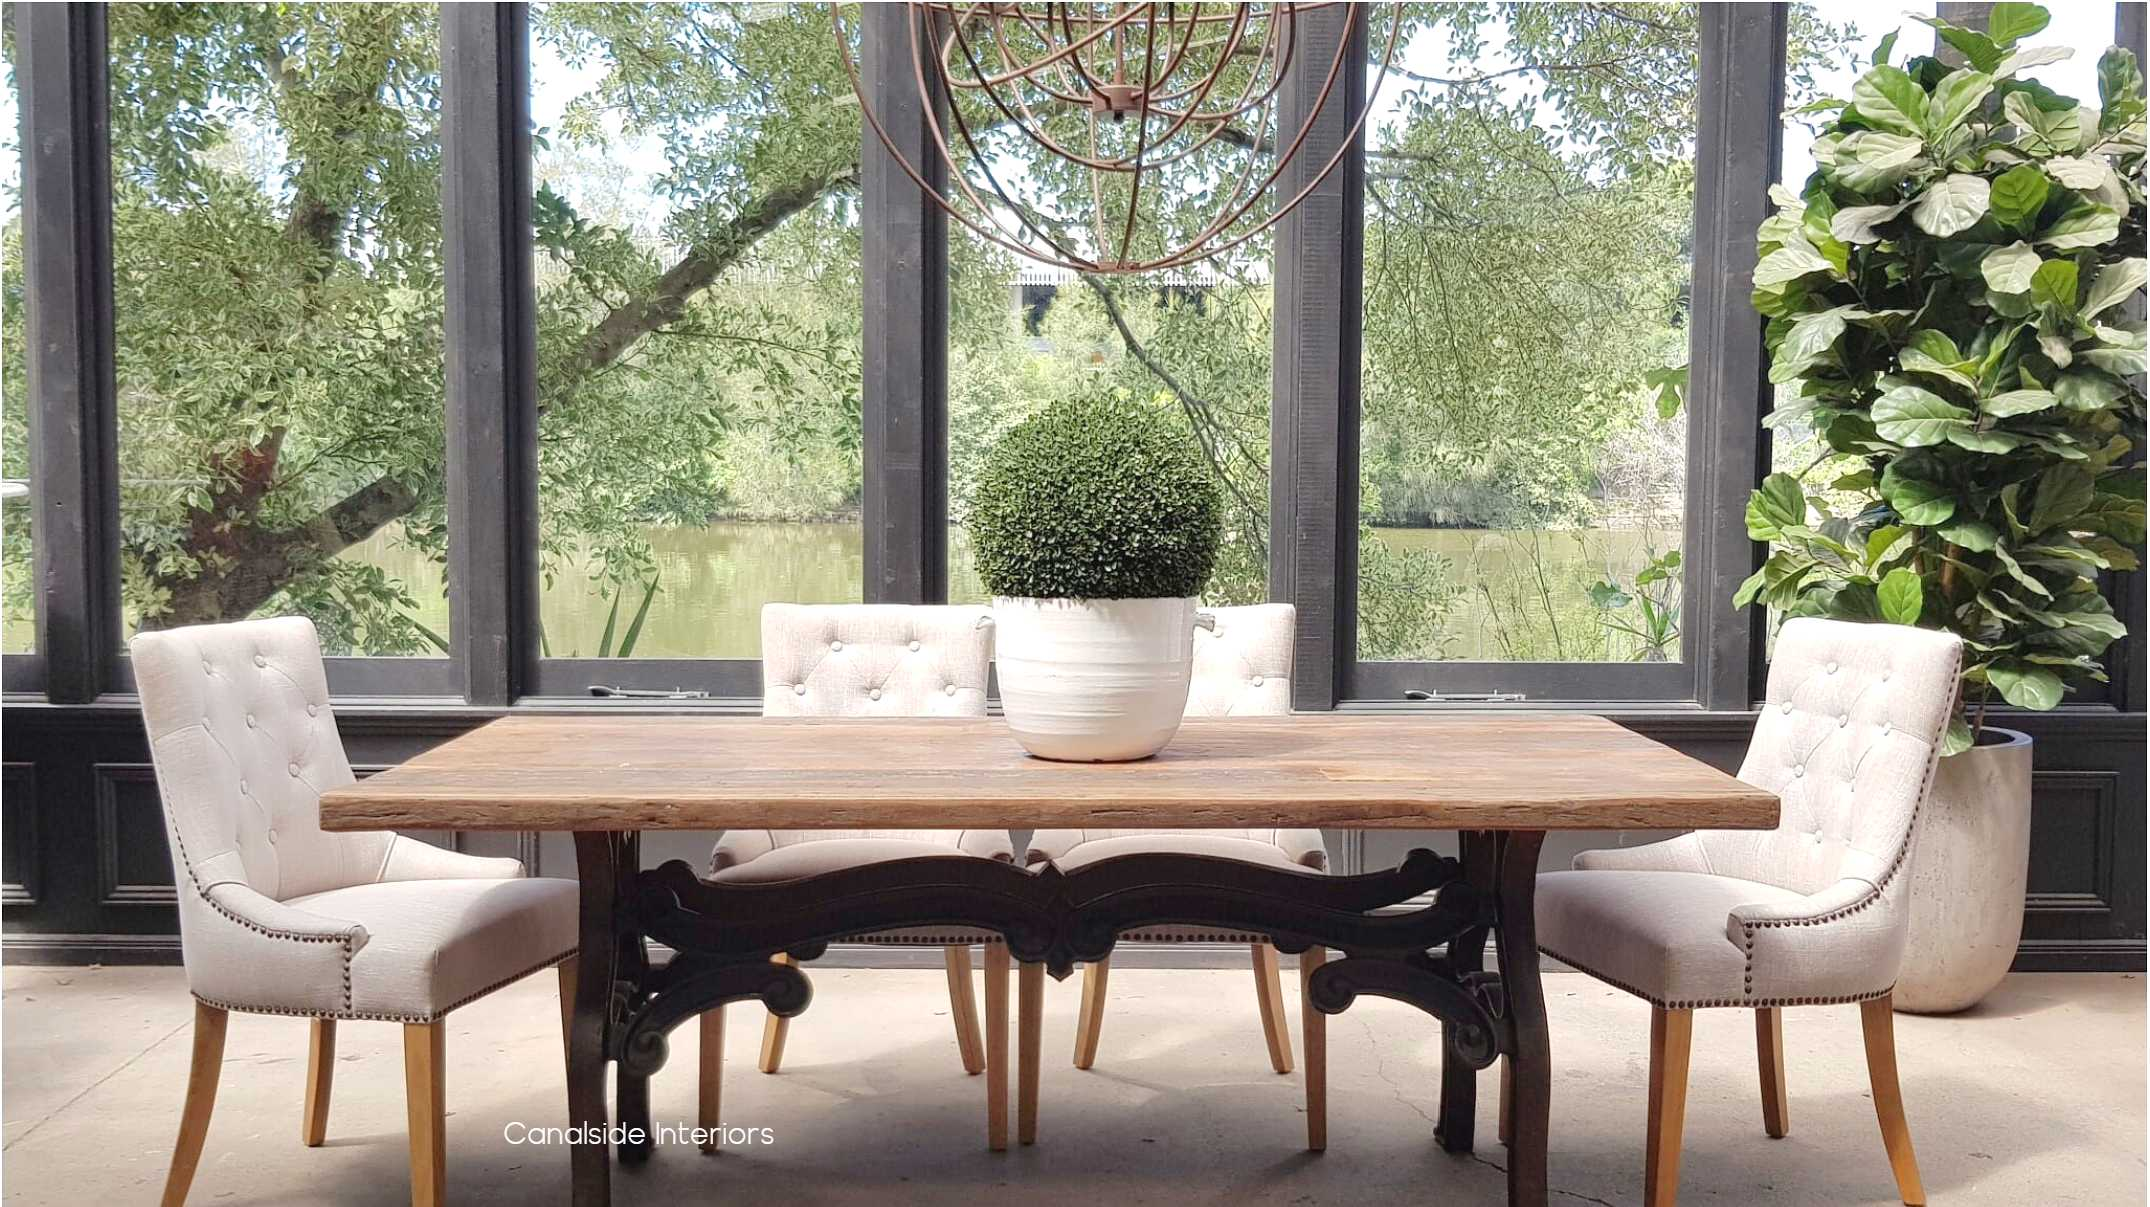 Hobbs Dining table Canalside Interiors